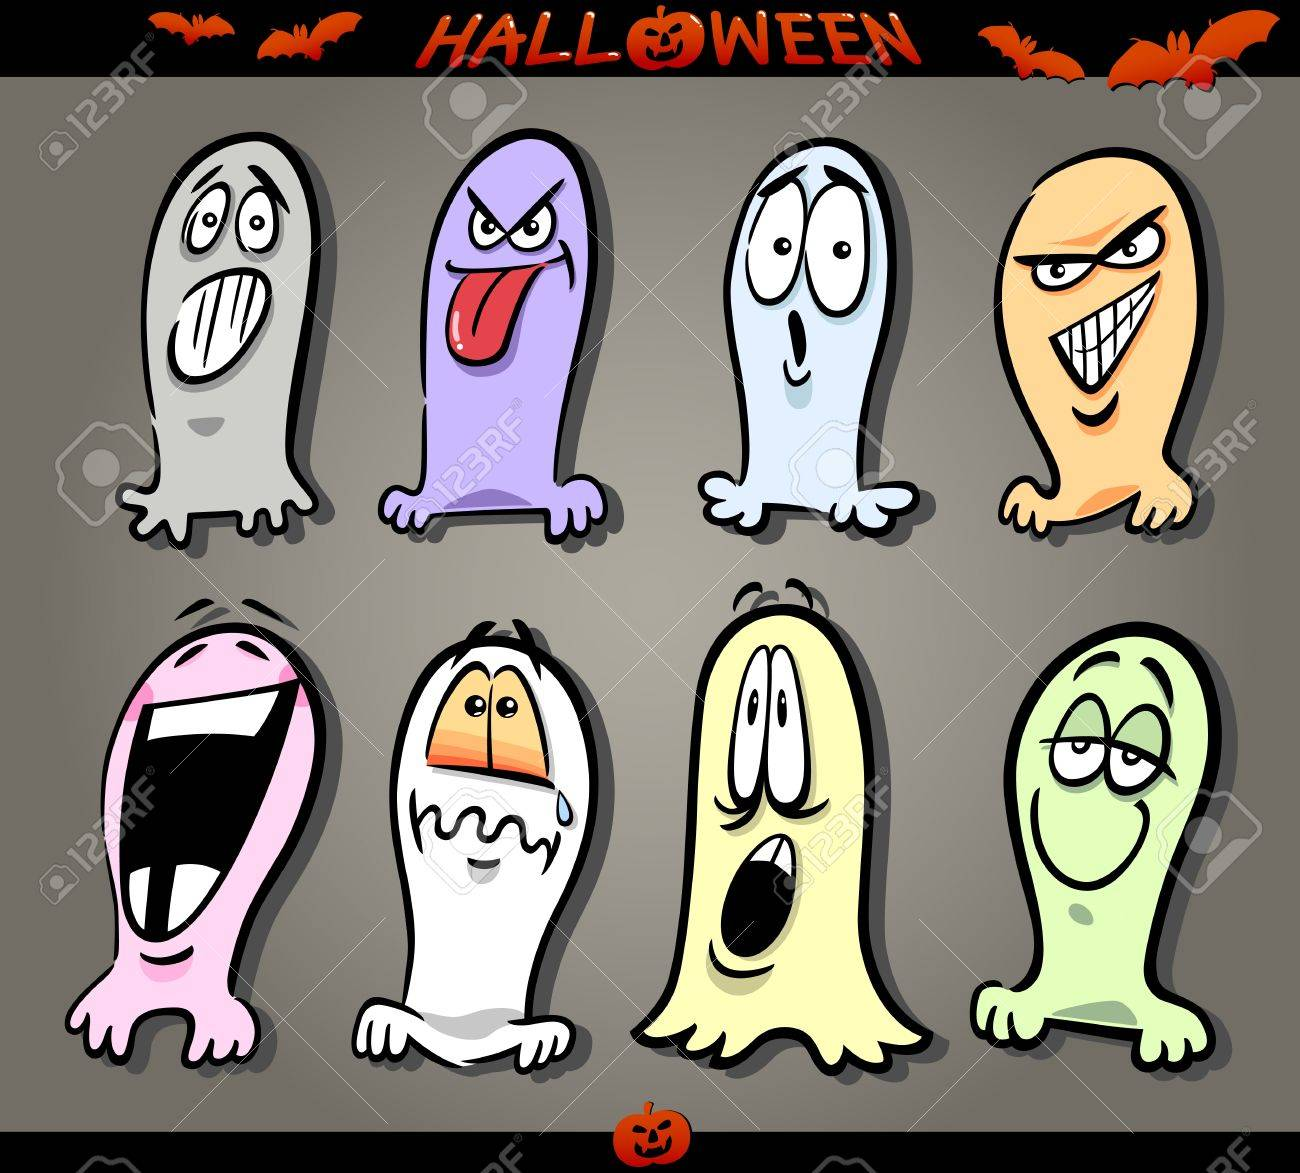 cartoon illustration of halloween themes ghosts emotions funny